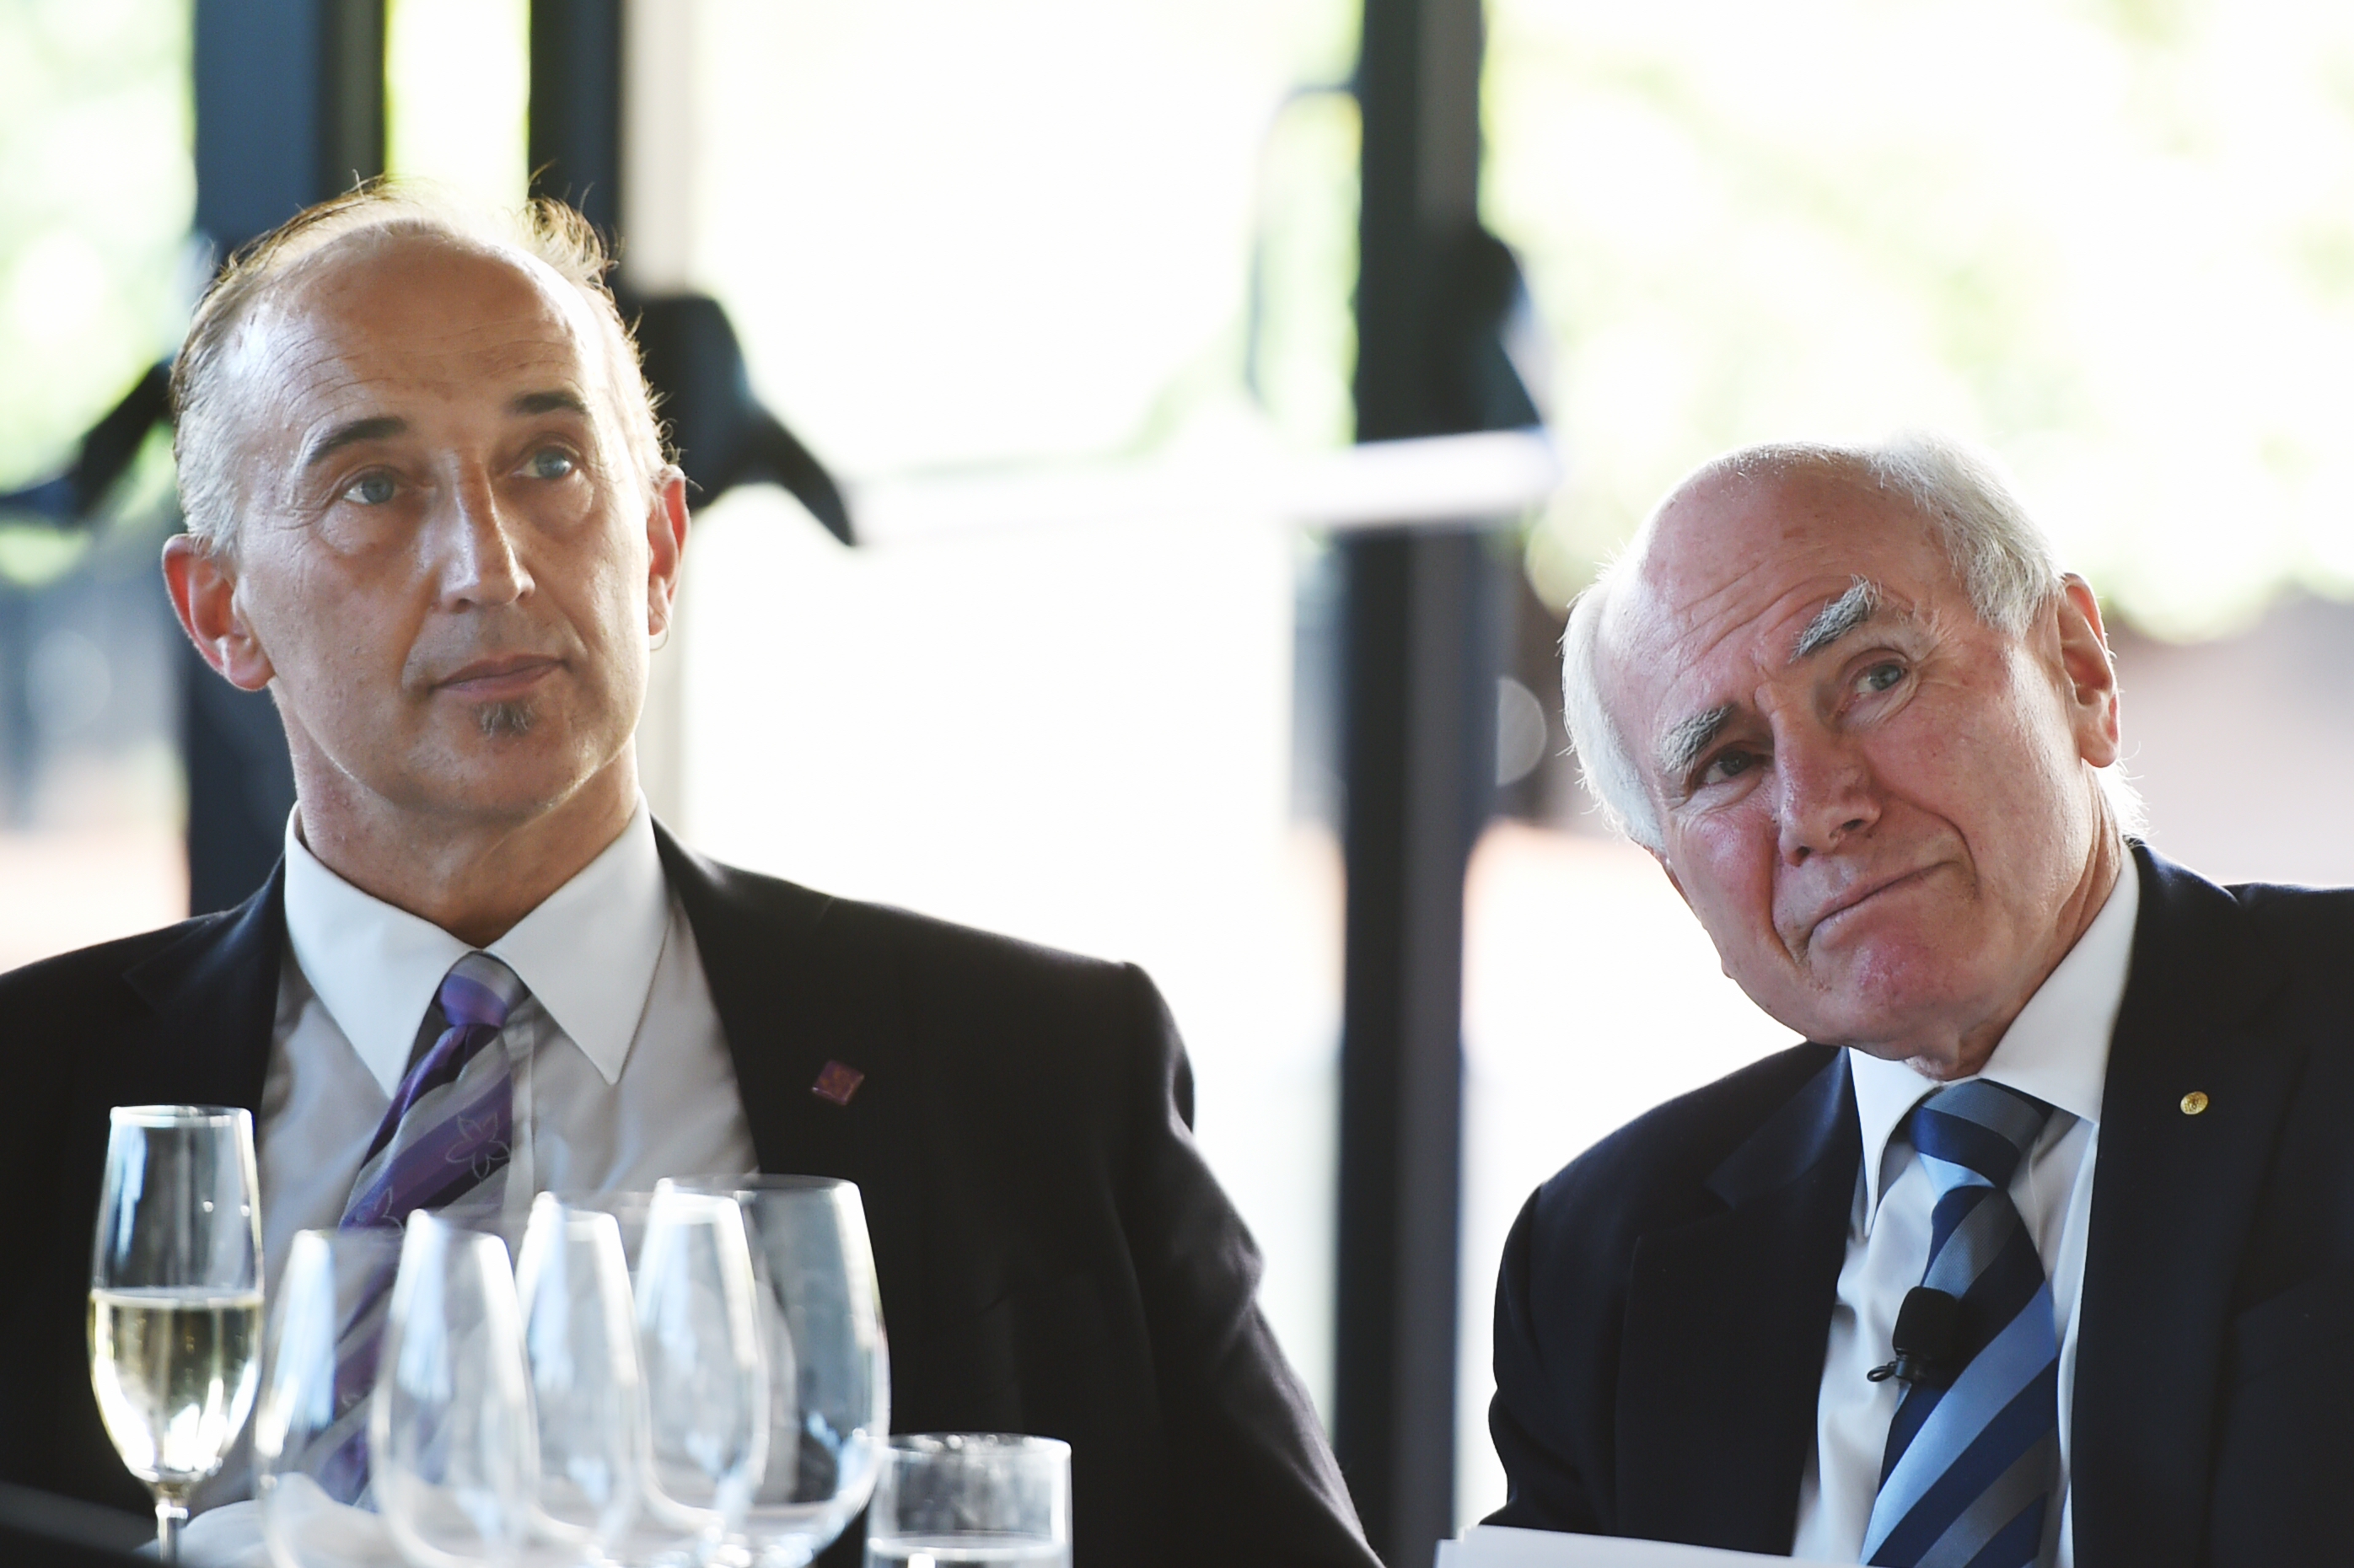 Former Australian Prime Minister John Howard (right) with Walter Mikac, who lost his wife and two daughters in the Port Arthur Massacre, at a Gun Control Australia event in 2015. Photo: AAP/Dean Lewins